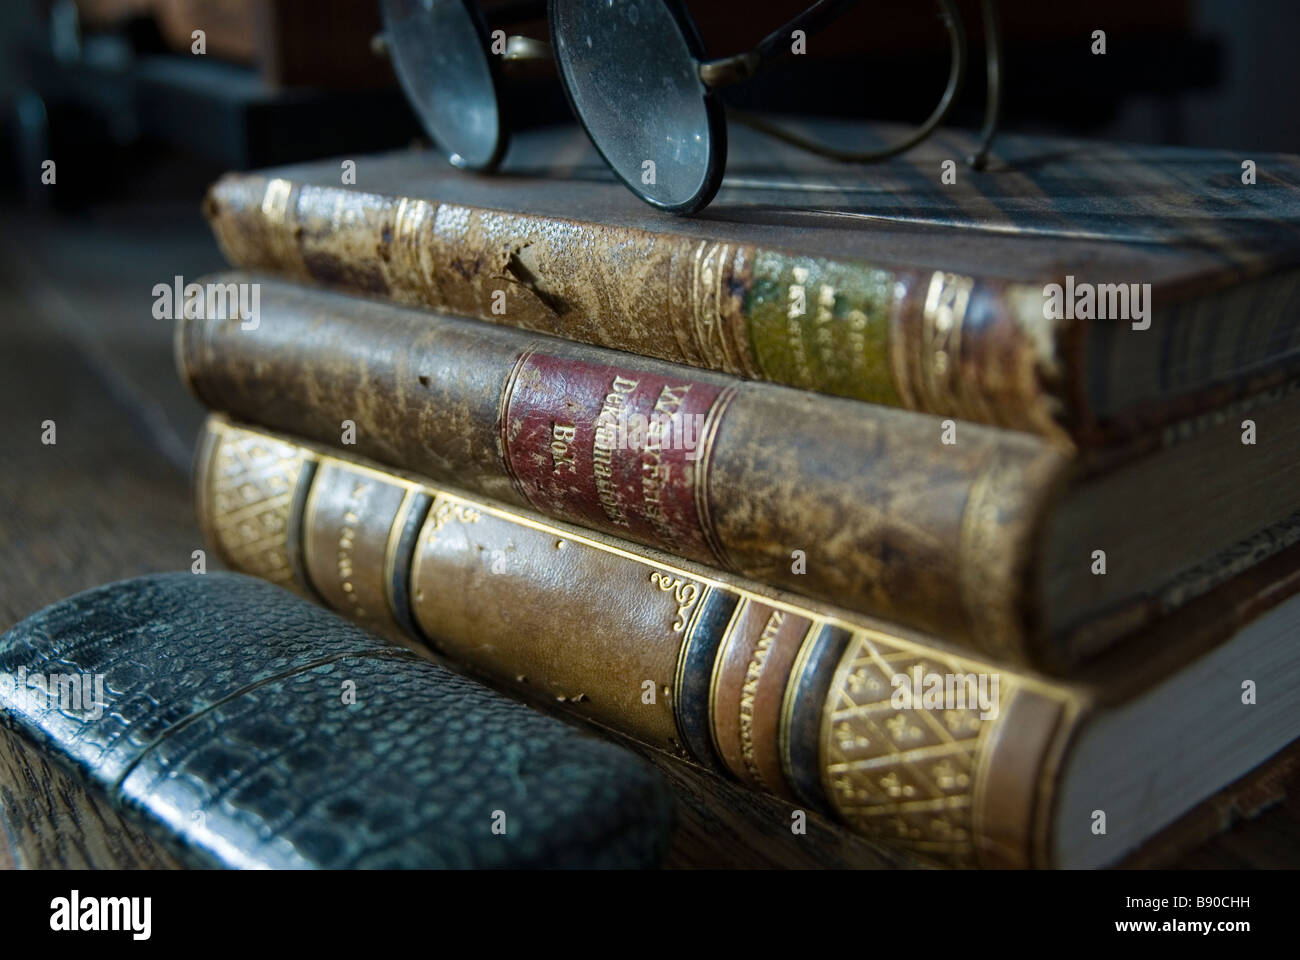 Old books. - Stock Image